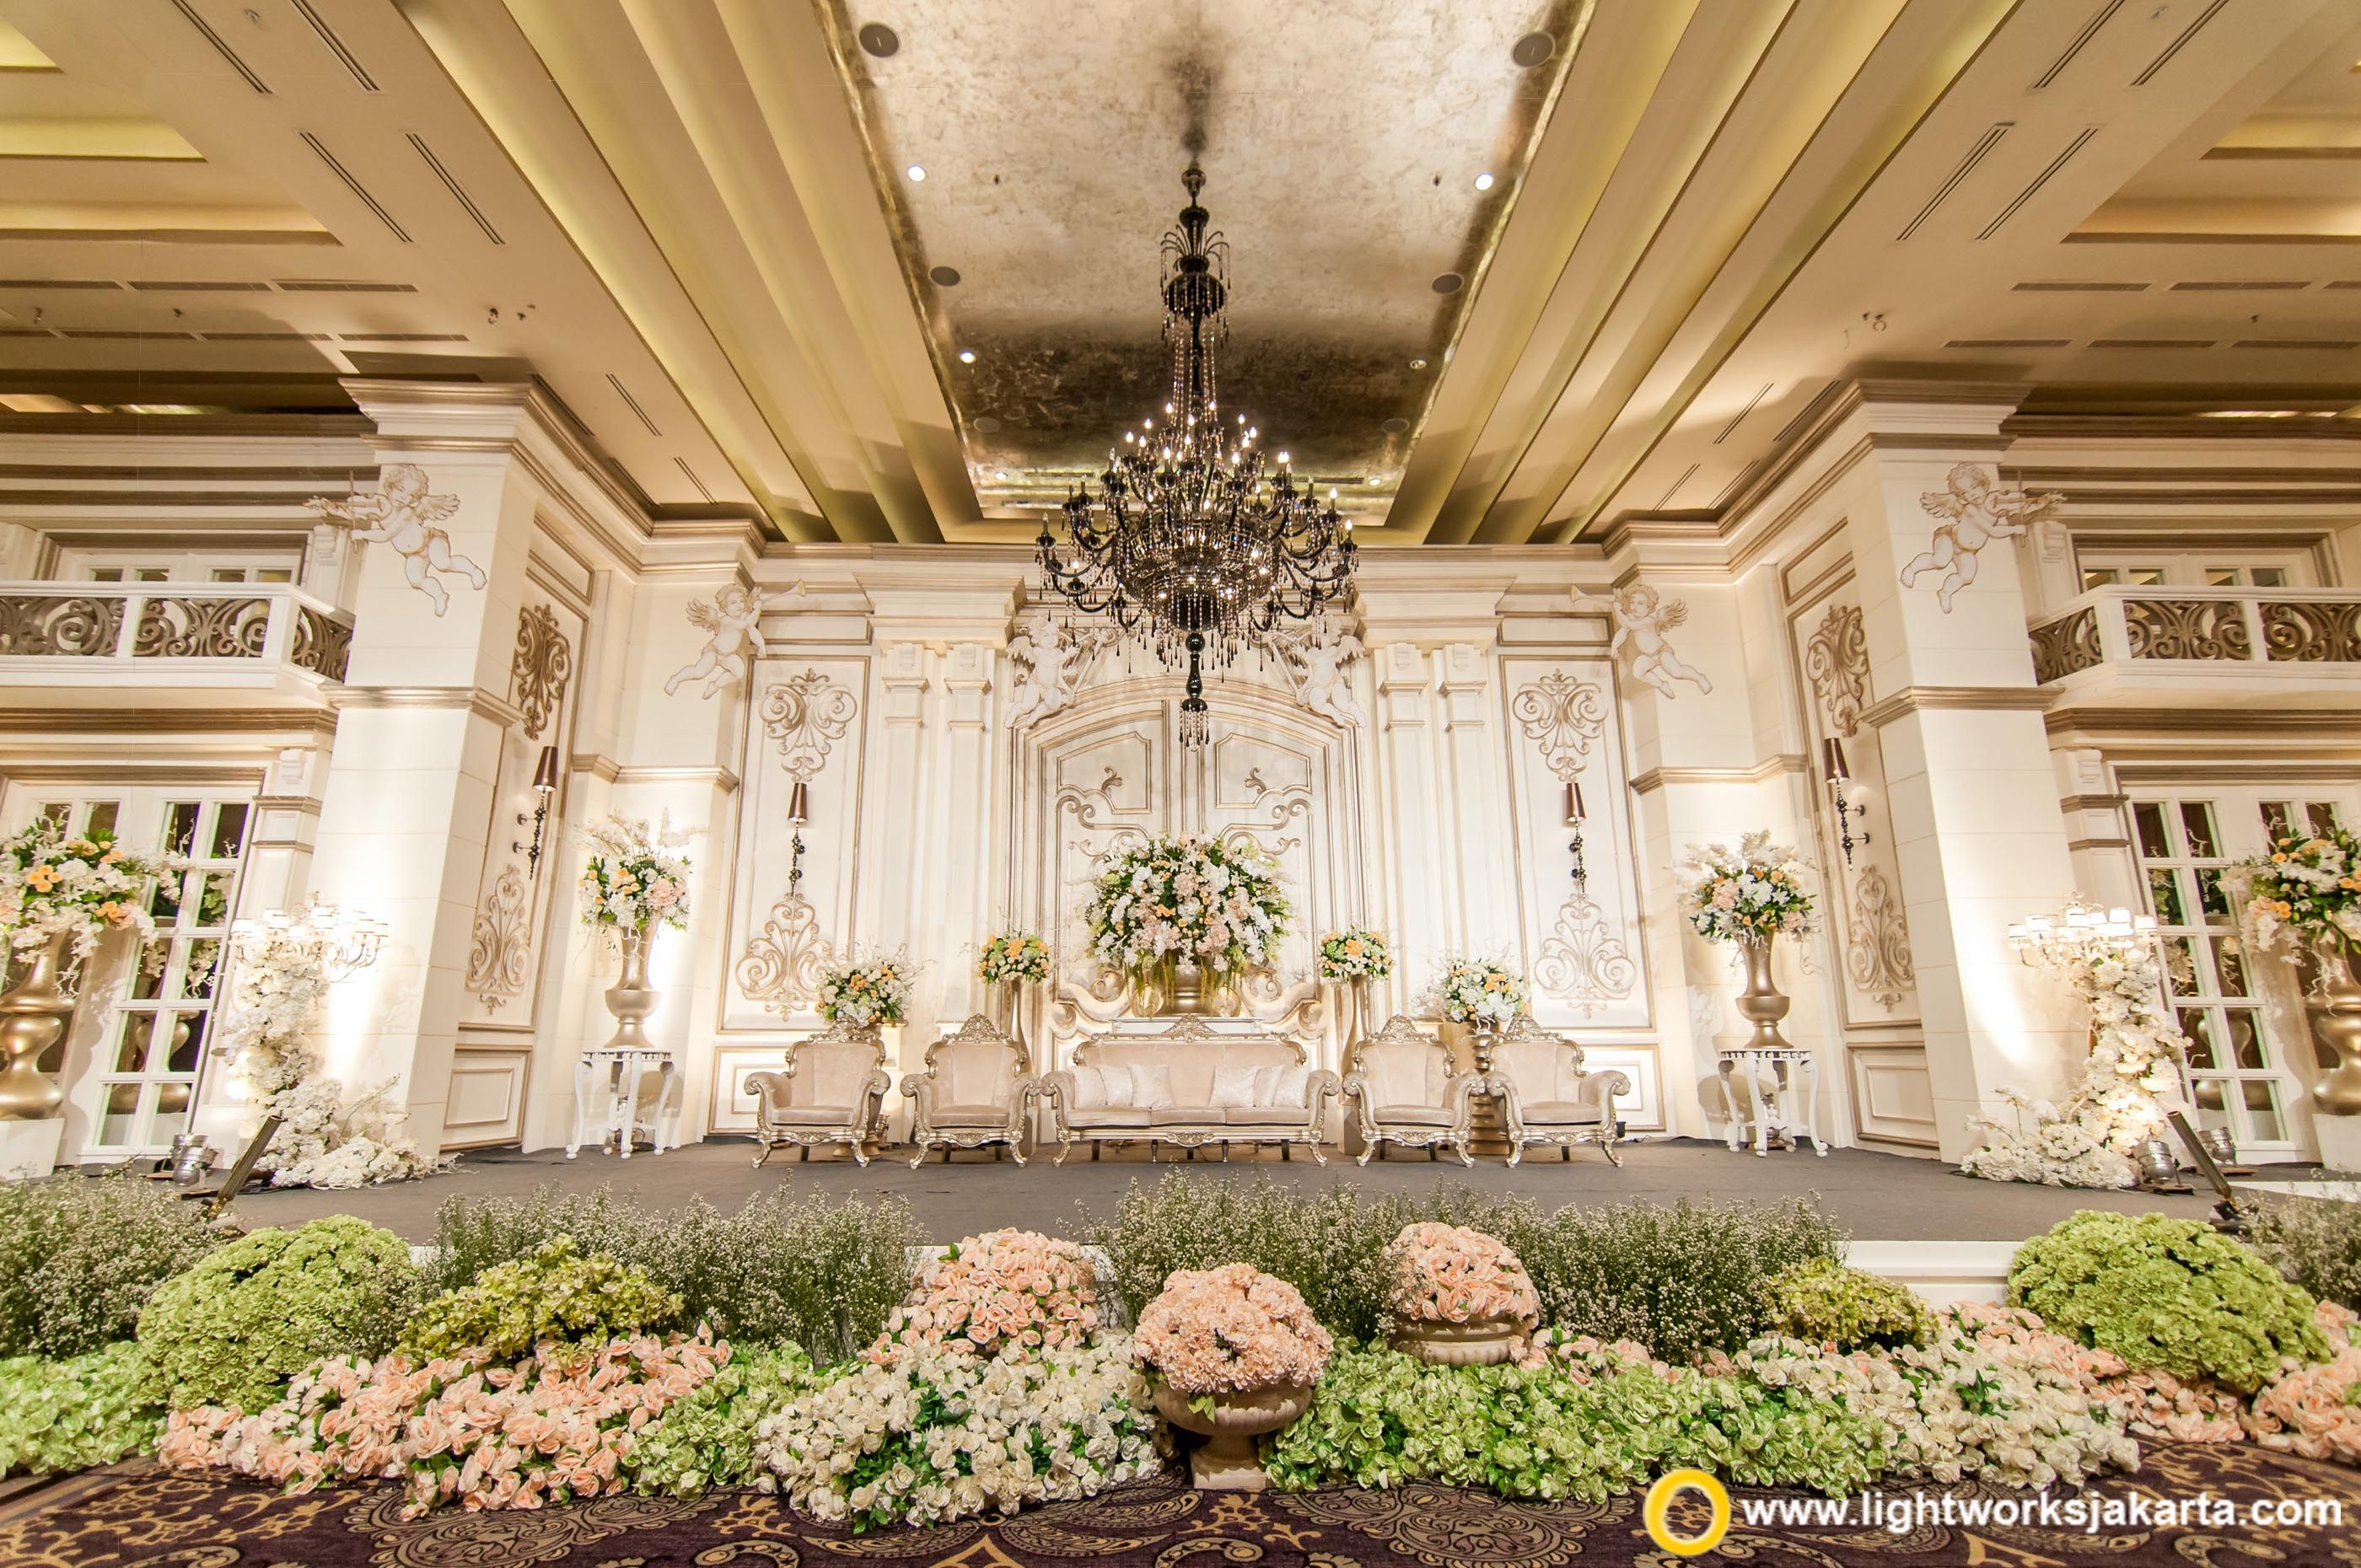 The elegant wedding stage at Kempinski Hotel Jakarta